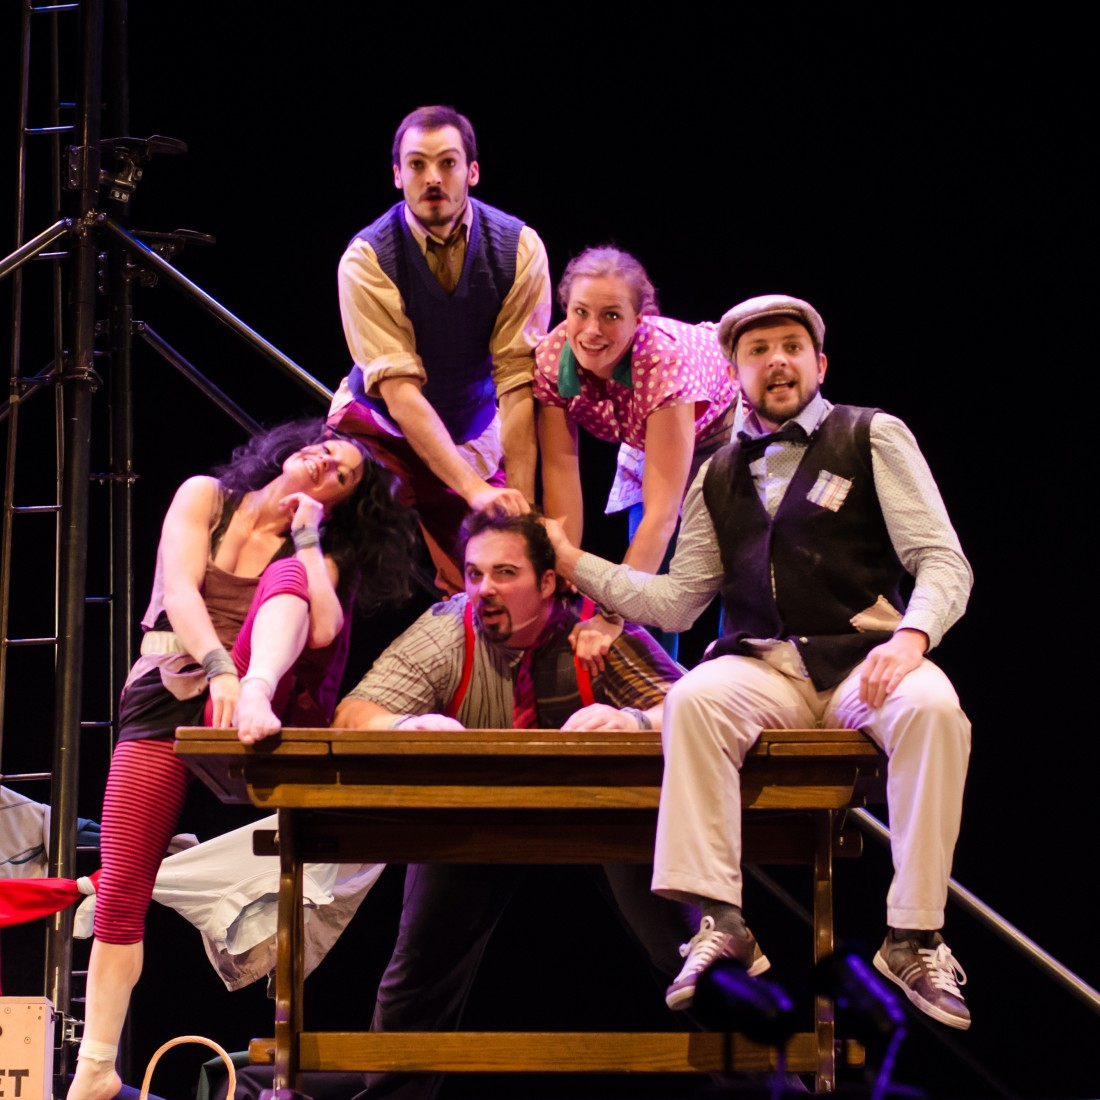 Thrillingly spectacular circus skills blend seamlessly with physical comedy, theatrical storytelling and slapstick in this colourful, loud and funny dramatisation of the domestic adventures of a chaotic family of misfits. Nuffield Theatre Lancaster. Saturday 13th February 2016.